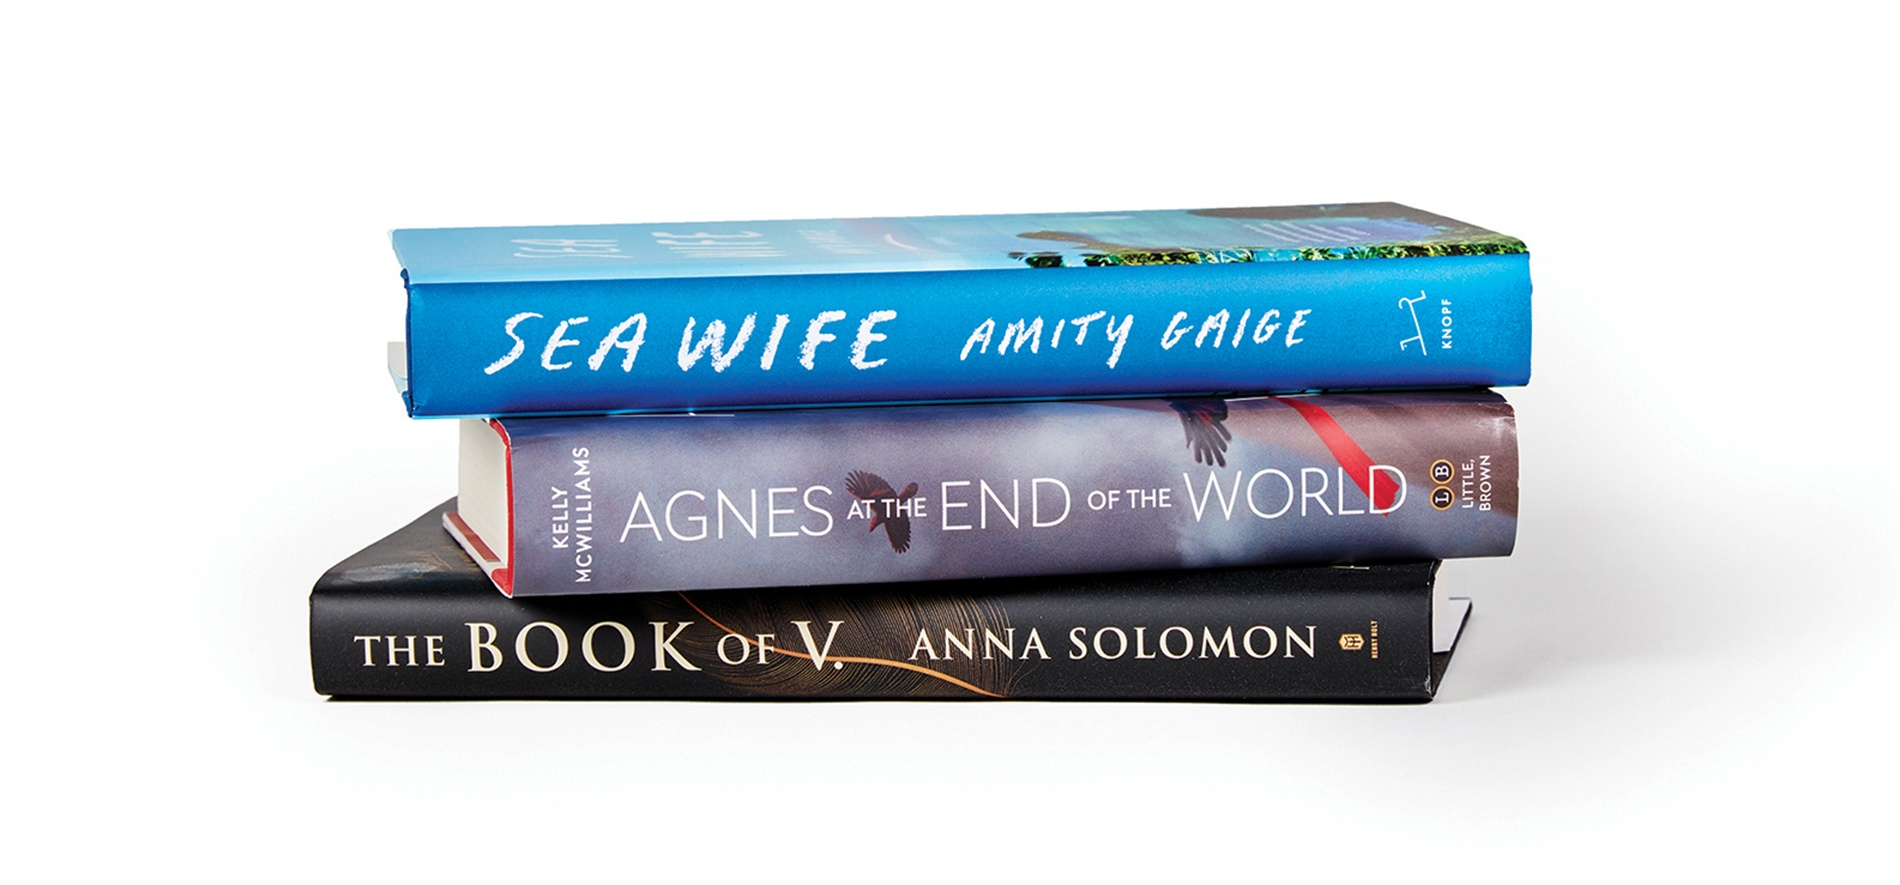 Books by Anna Solomon '98, Amity Gaige '95, and Kelly McWilliams '11